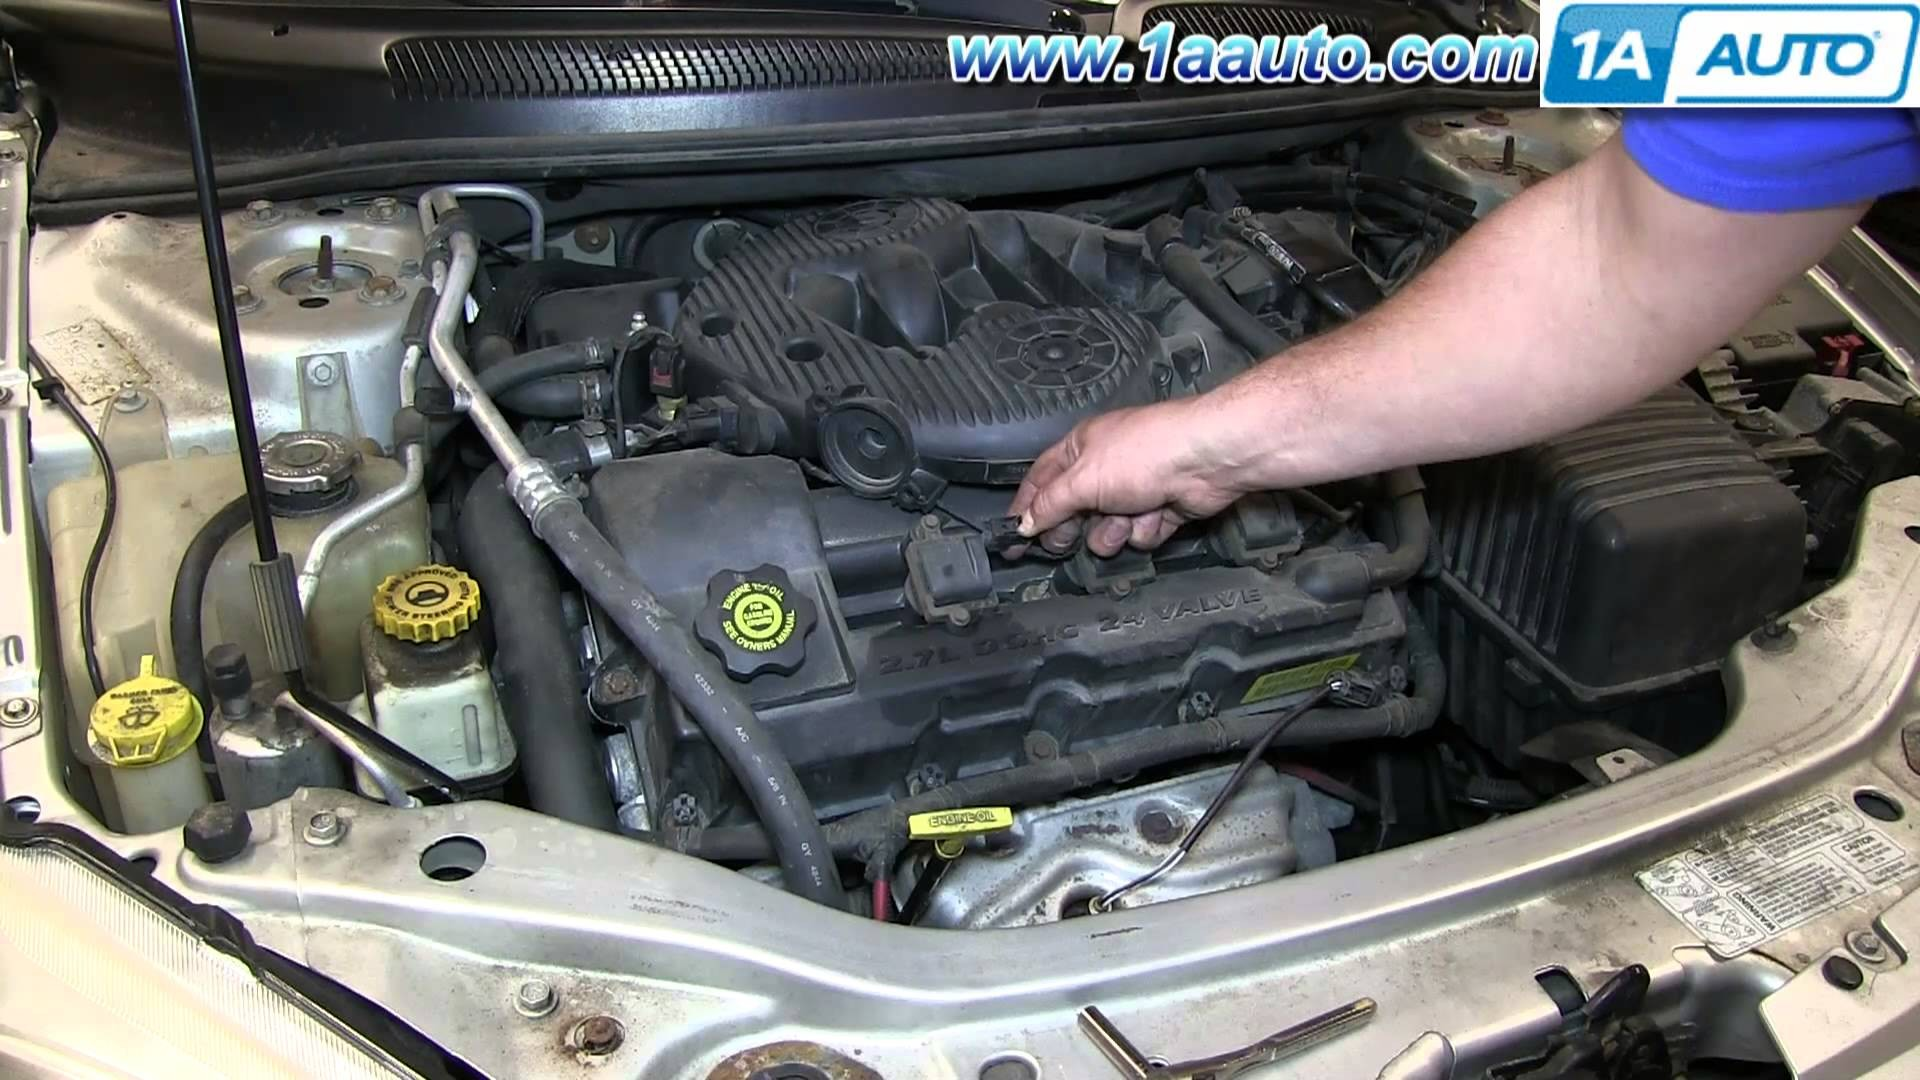 2005 Dodge Stratus Engine Diagram How to Install Replace Ignition Coil 2001 06 Chrysler Sebring 2 7l Of 2005 Dodge Stratus Engine Diagram